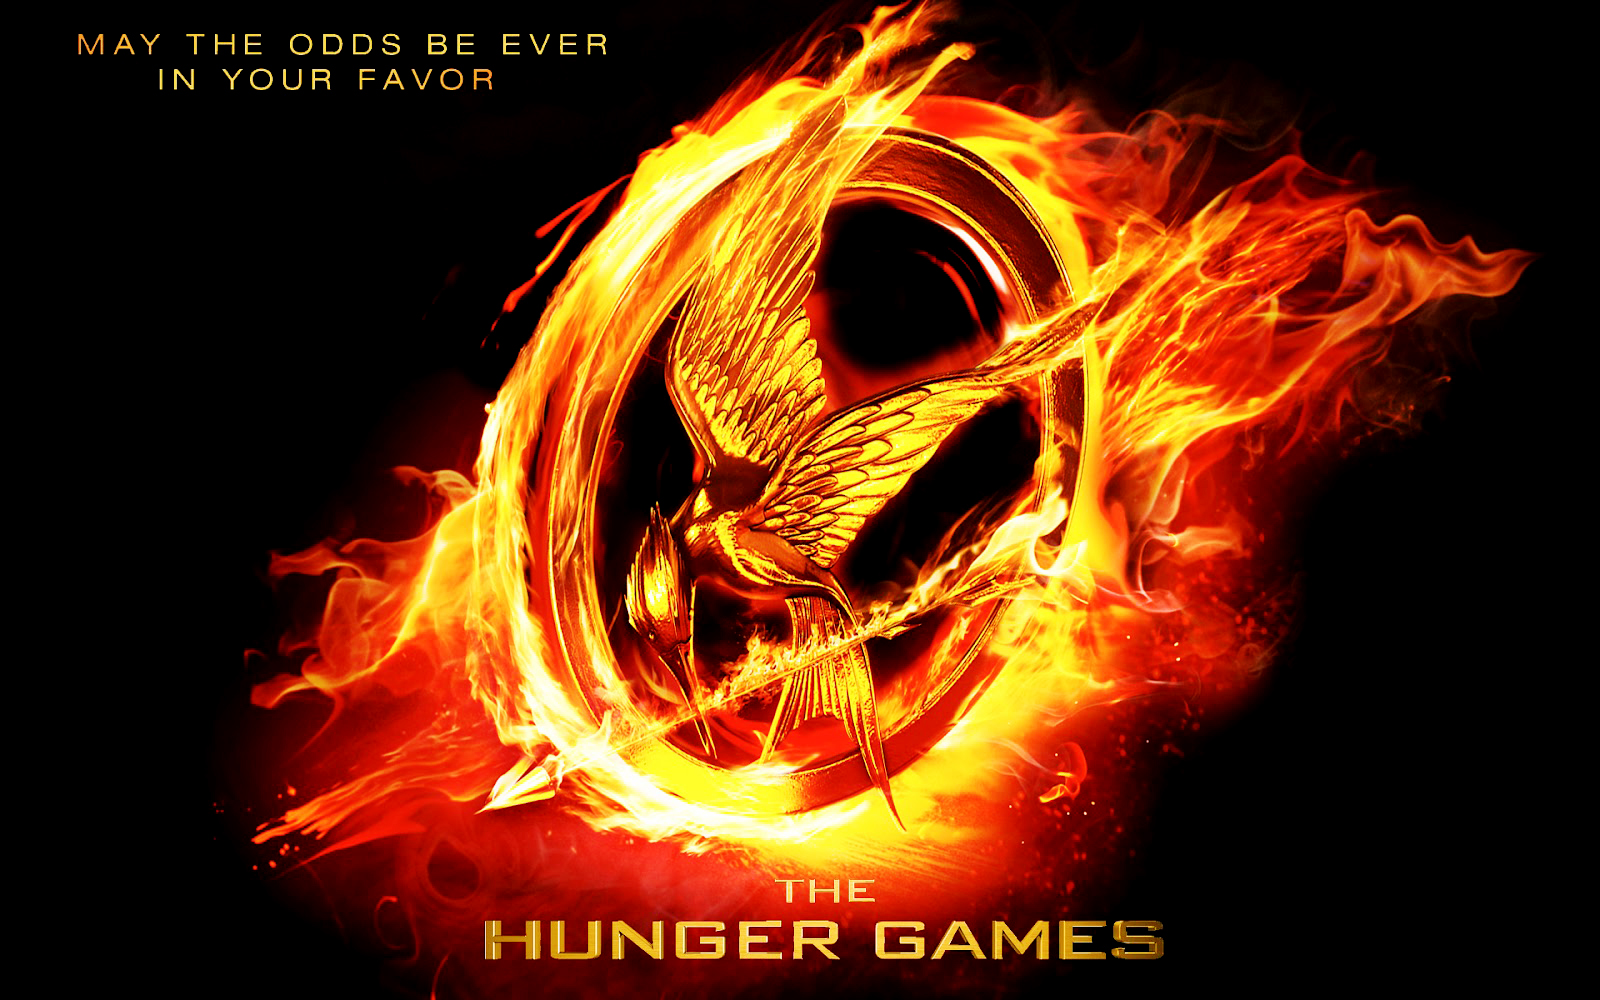 Record Breaking Movie The Hunger Games Posters HD Wallpapers